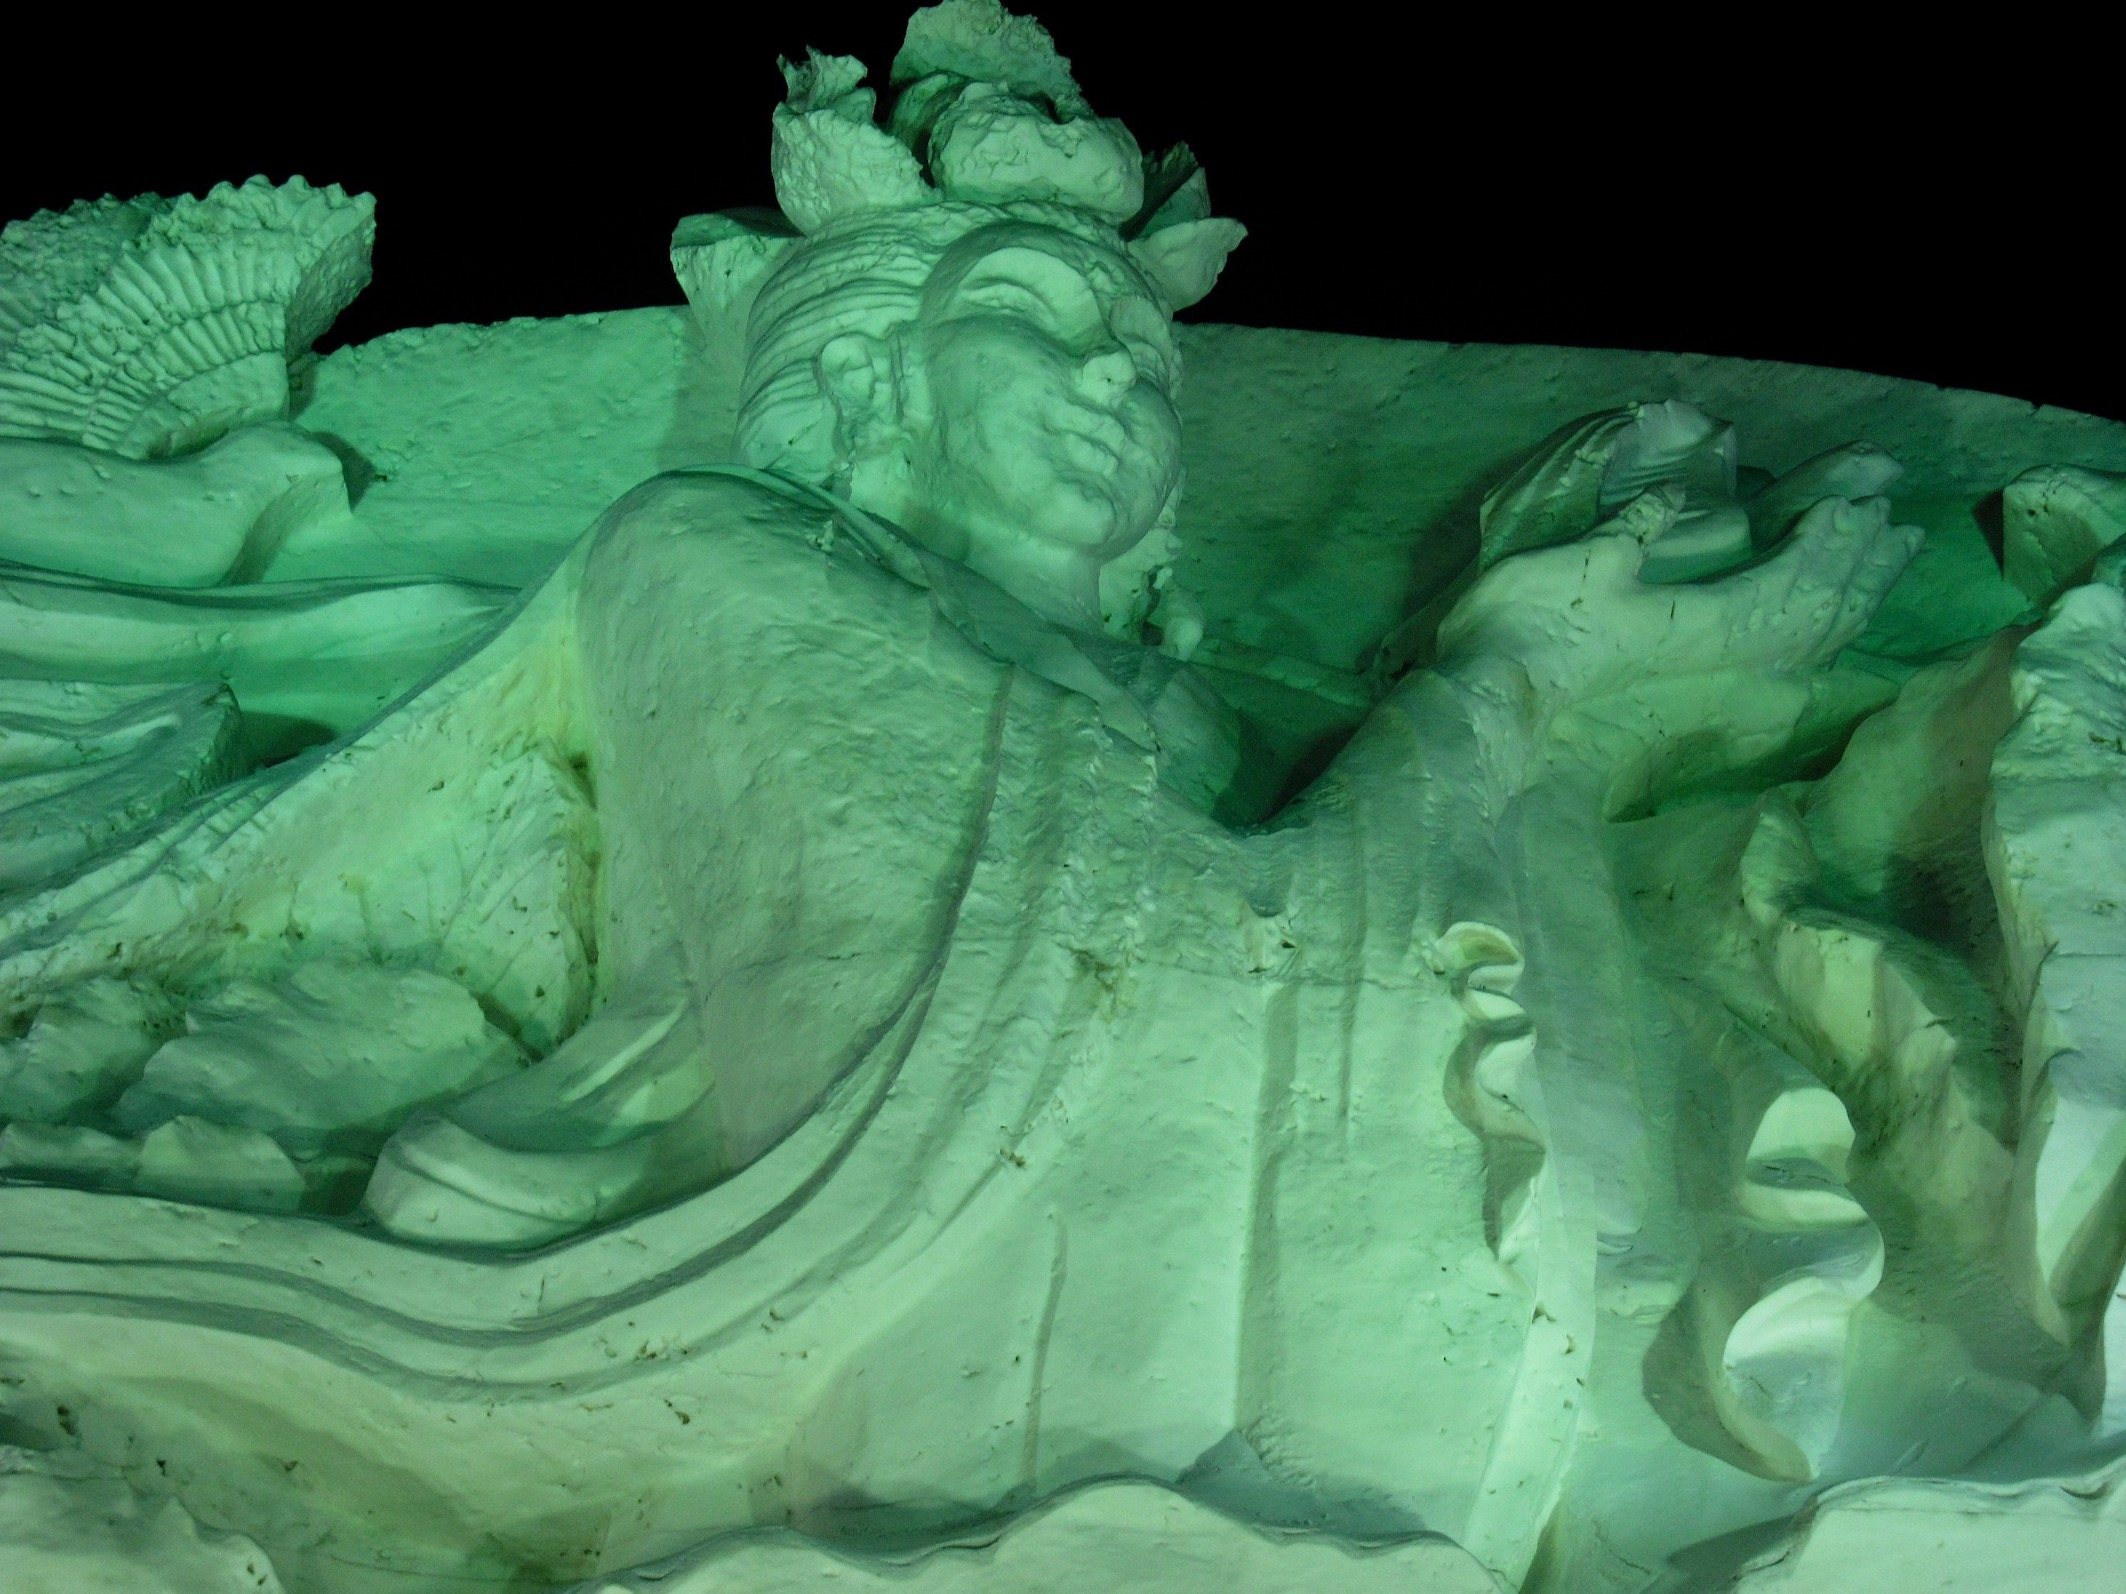 Harbin Ice and Snow Sculpture Festival Harbin Heilongjiang province China